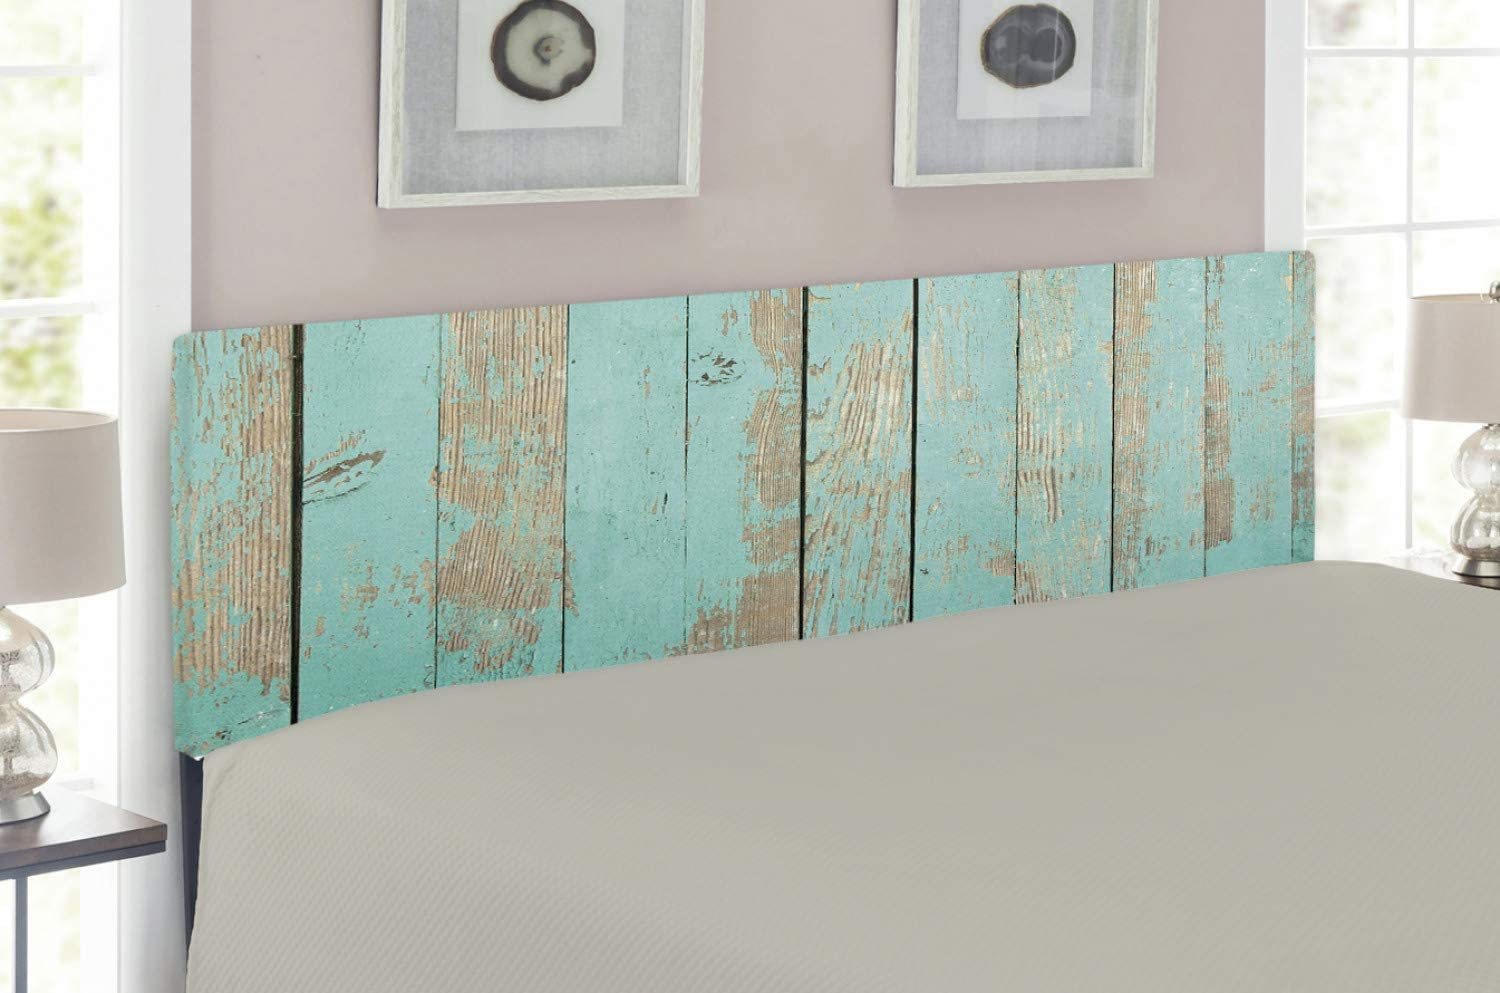 Lunarable Aqua Headboard, Worn Out Wooden Planks Faded Paint Marks Vintage Grunge Hardwood Image Rustic Design, Upholstered Decorative Metal Headboard with Memory Foam, for Full Size Bed, Aqua Tan